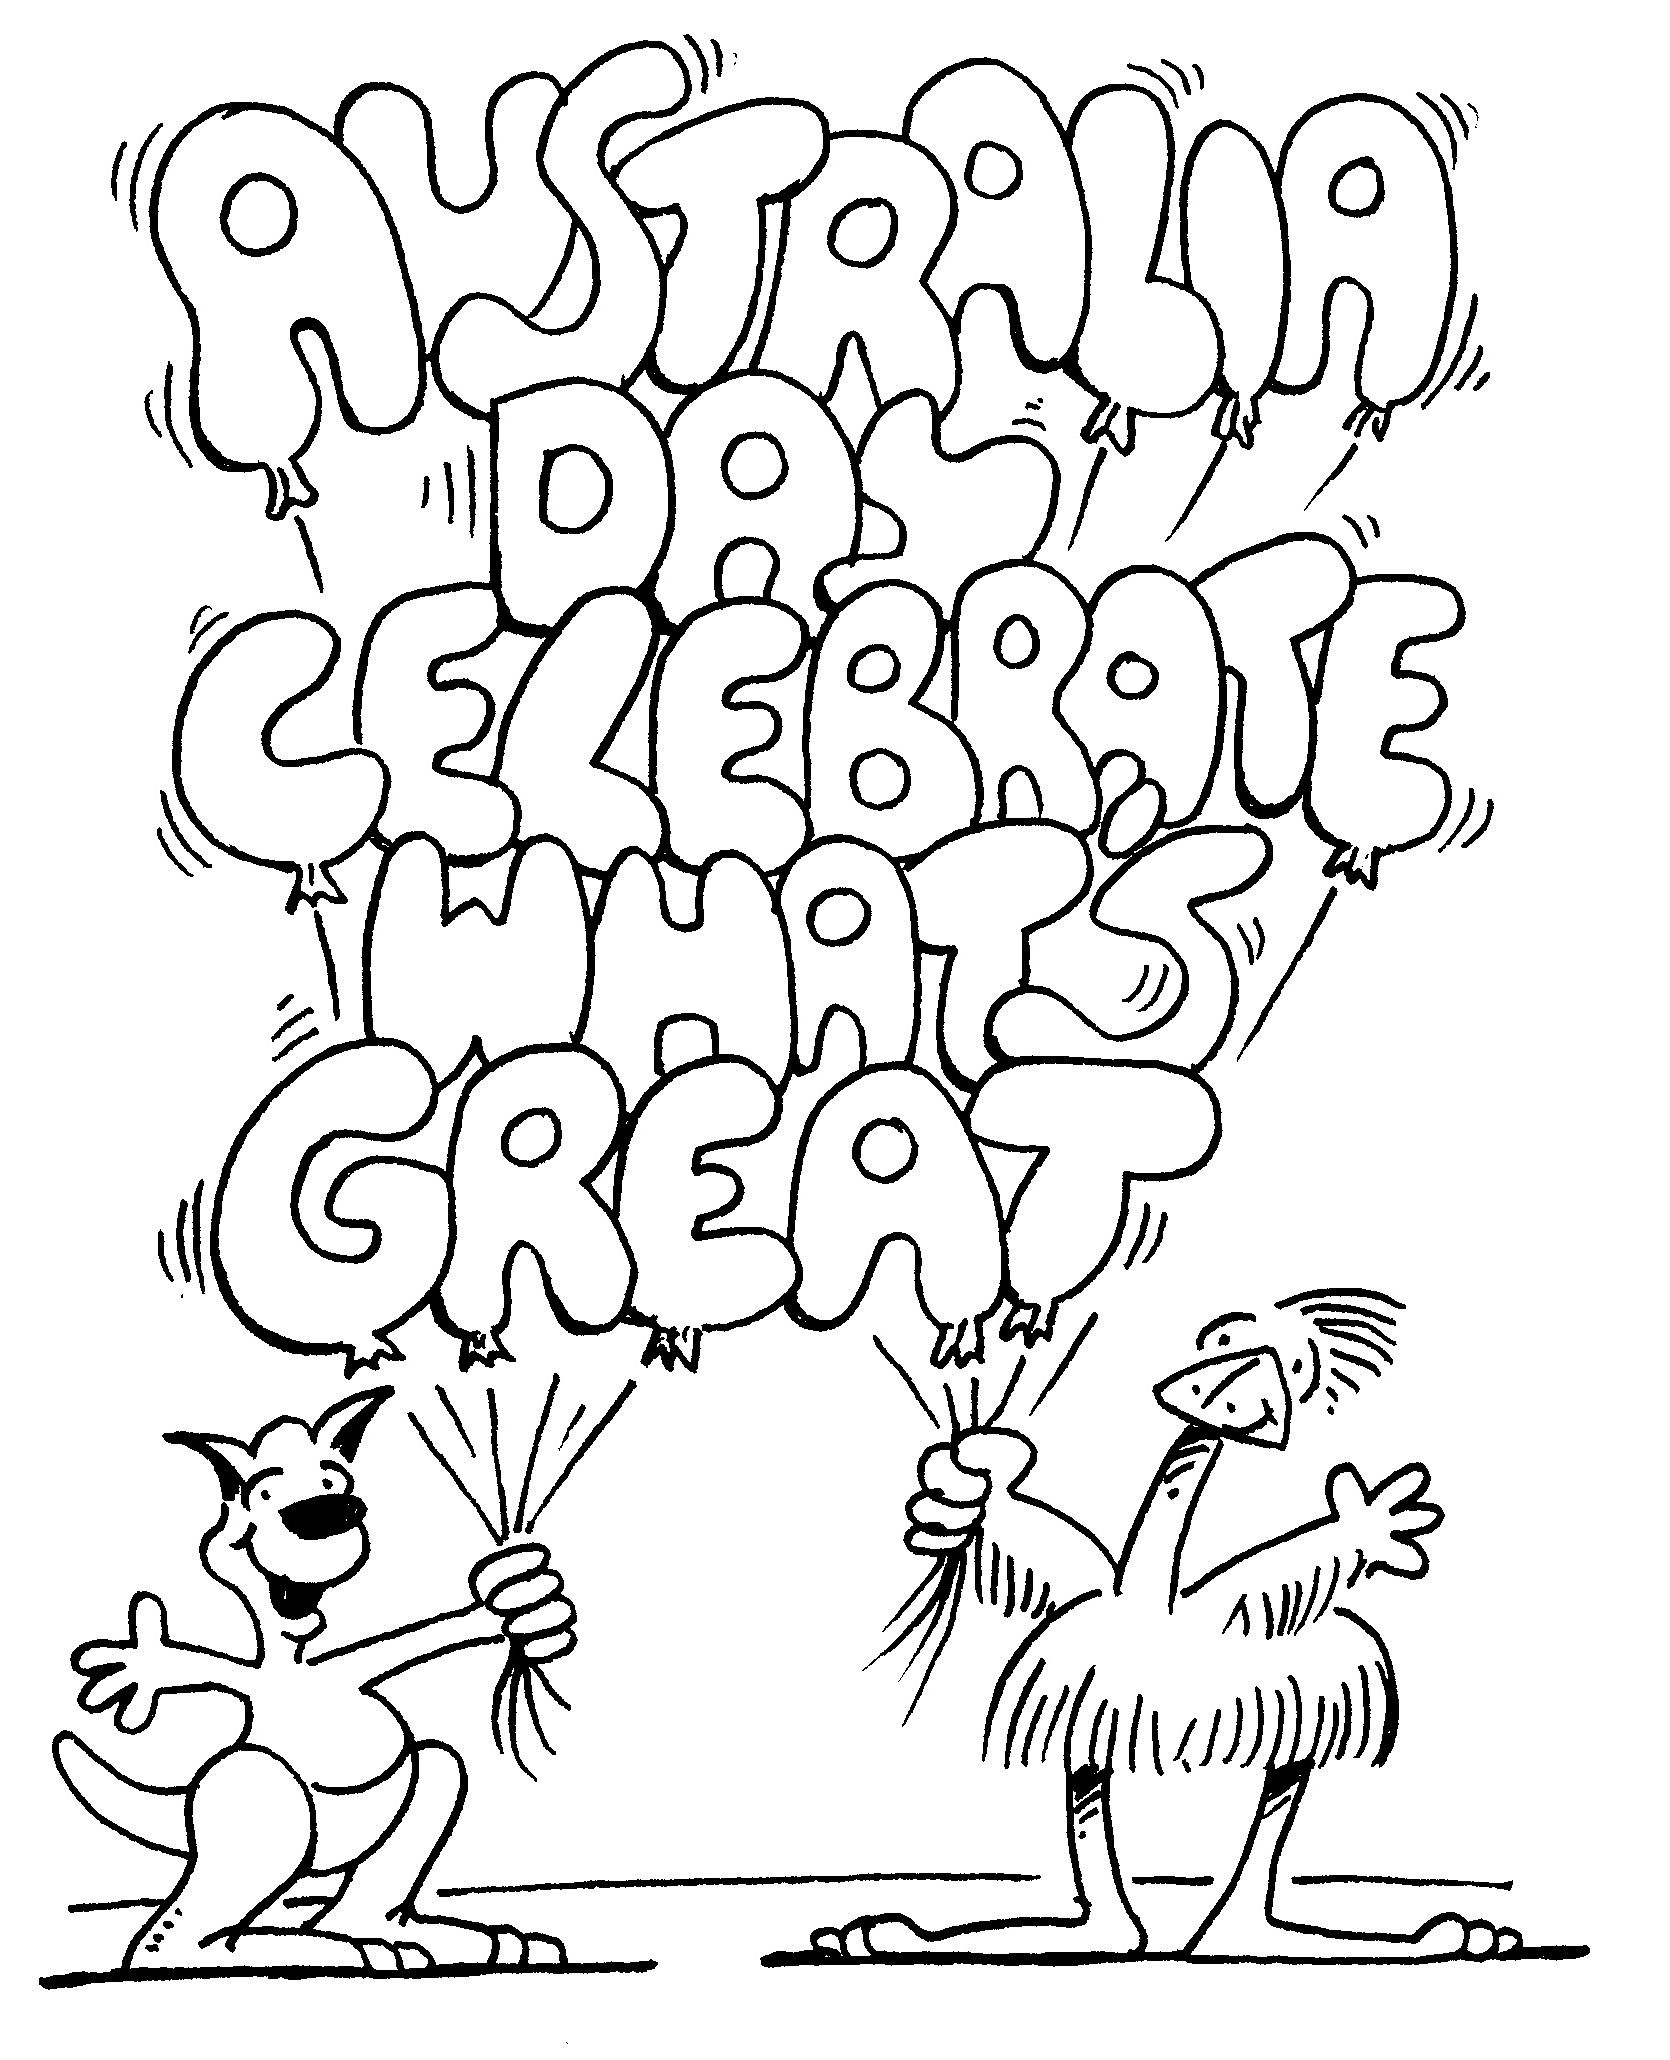 Australia Day Celebrate Whats Great Coloring For Kids